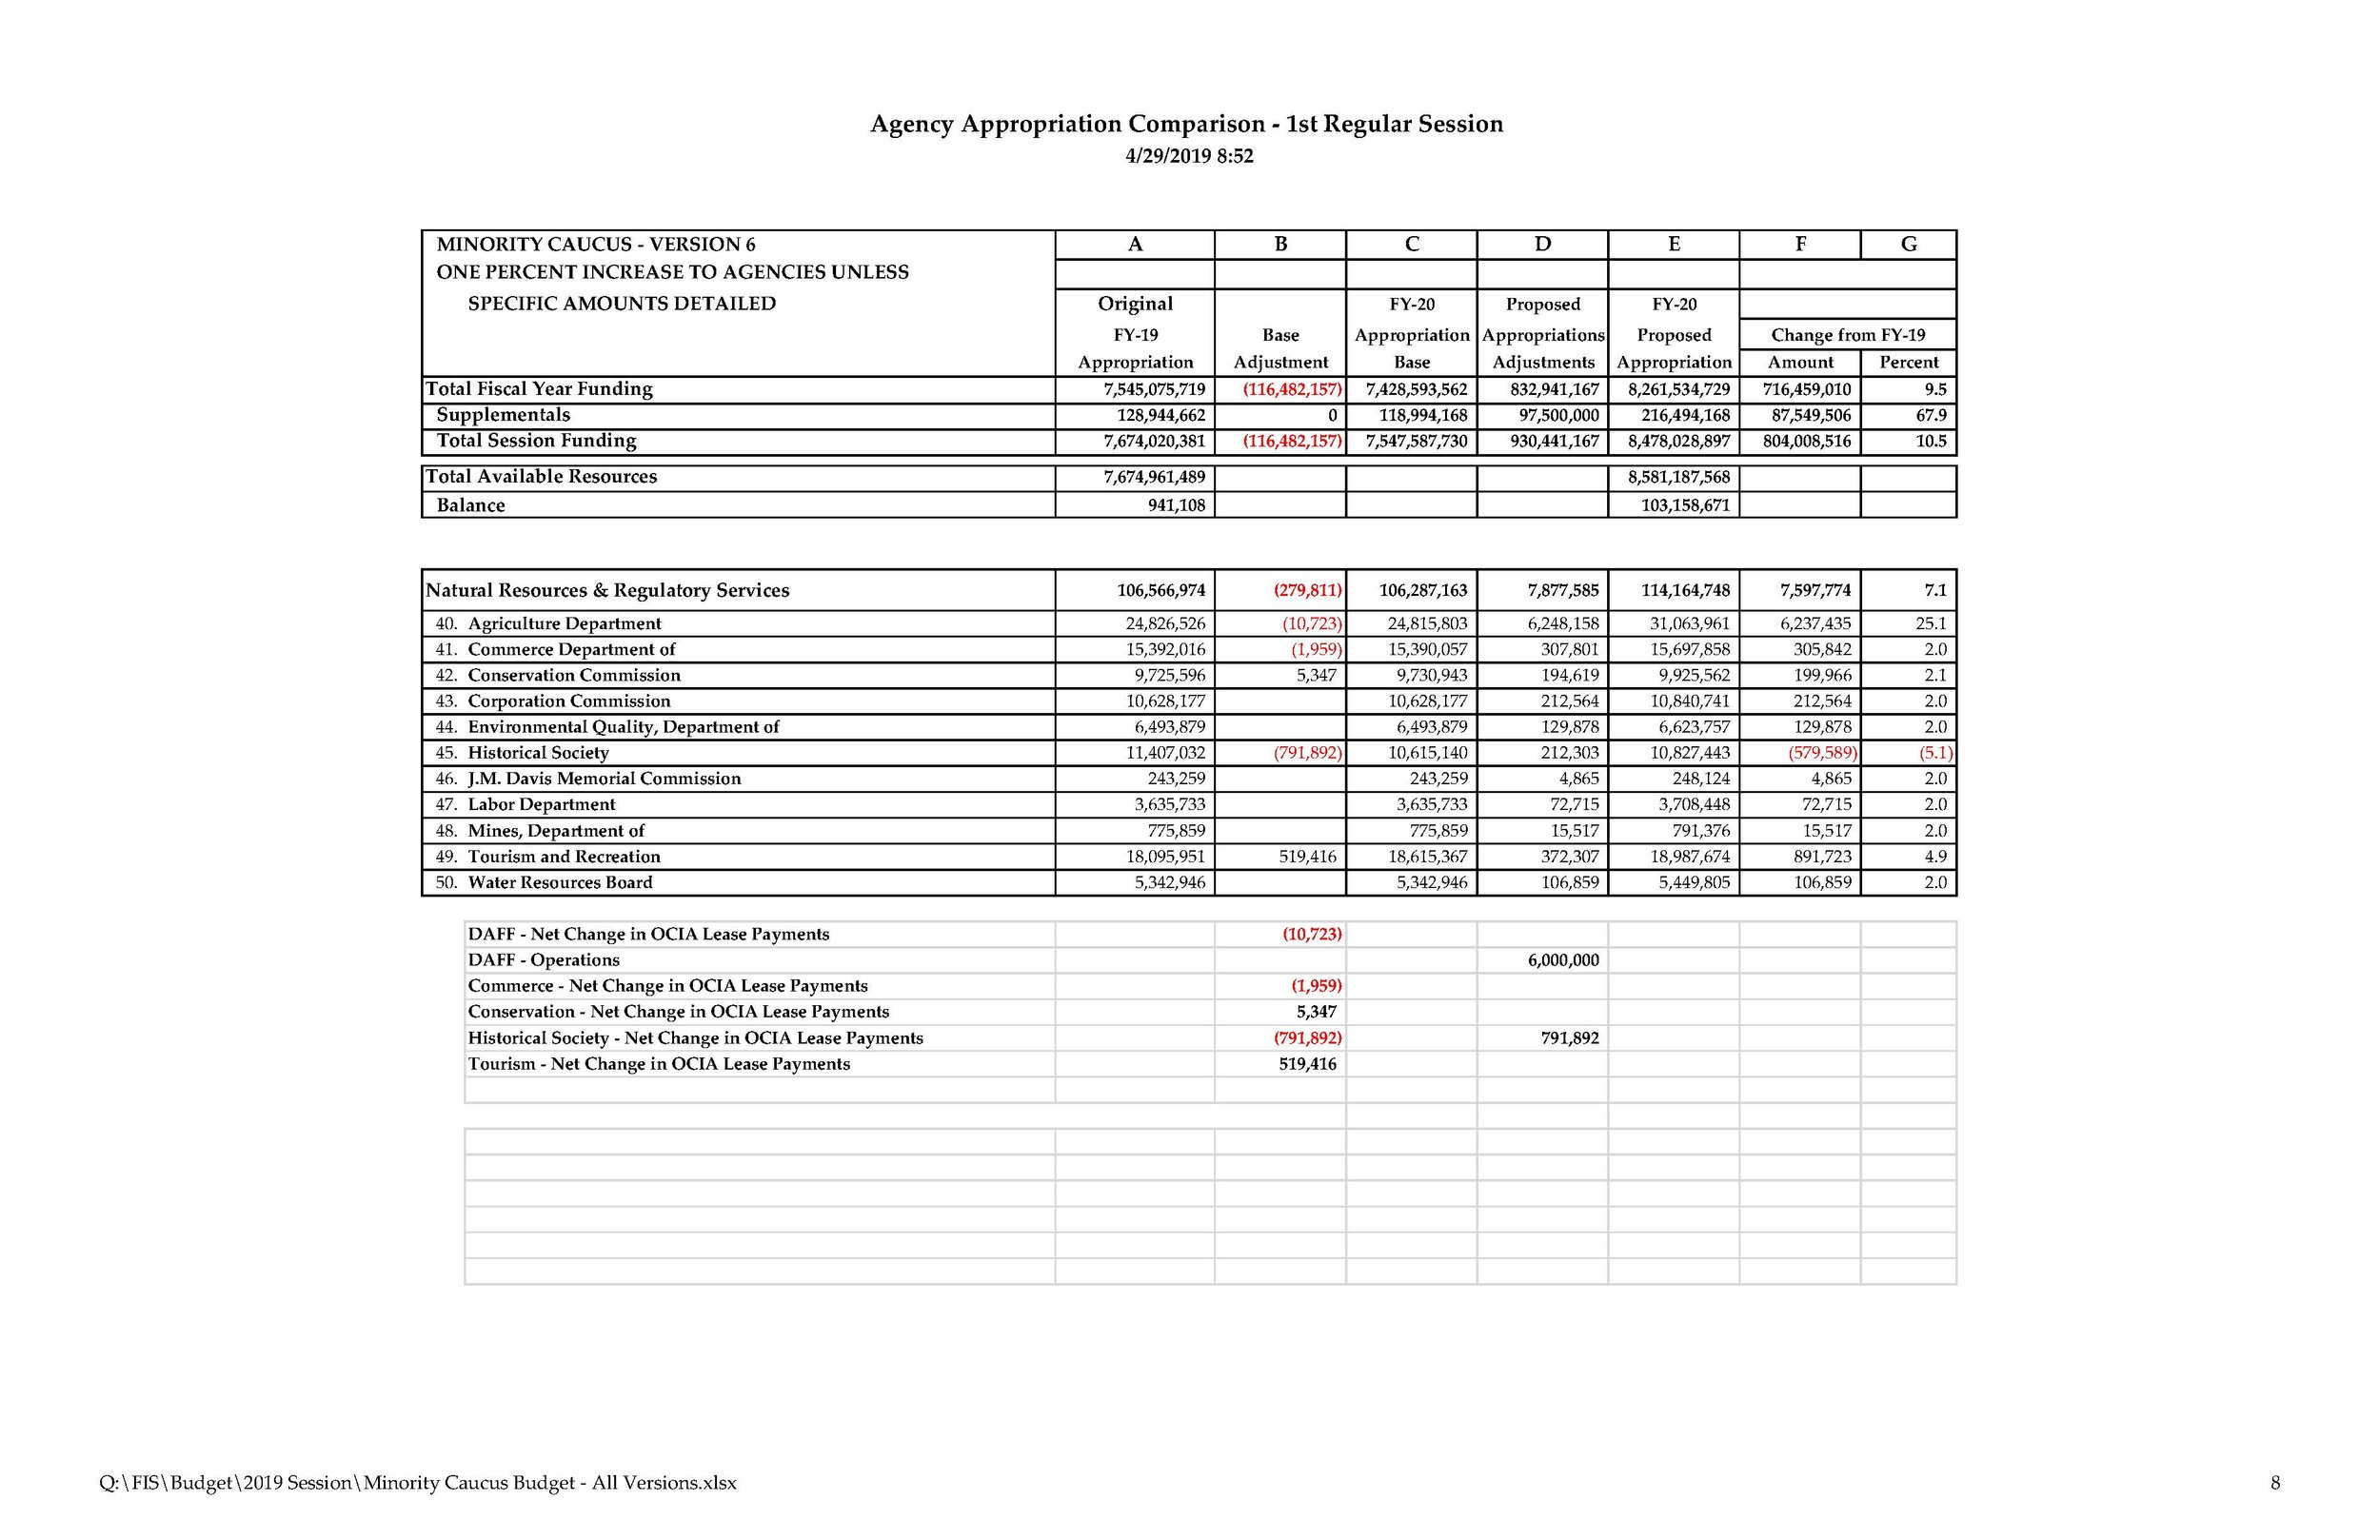 Minority Caucus Budget - All Versions_Page_08.jpg